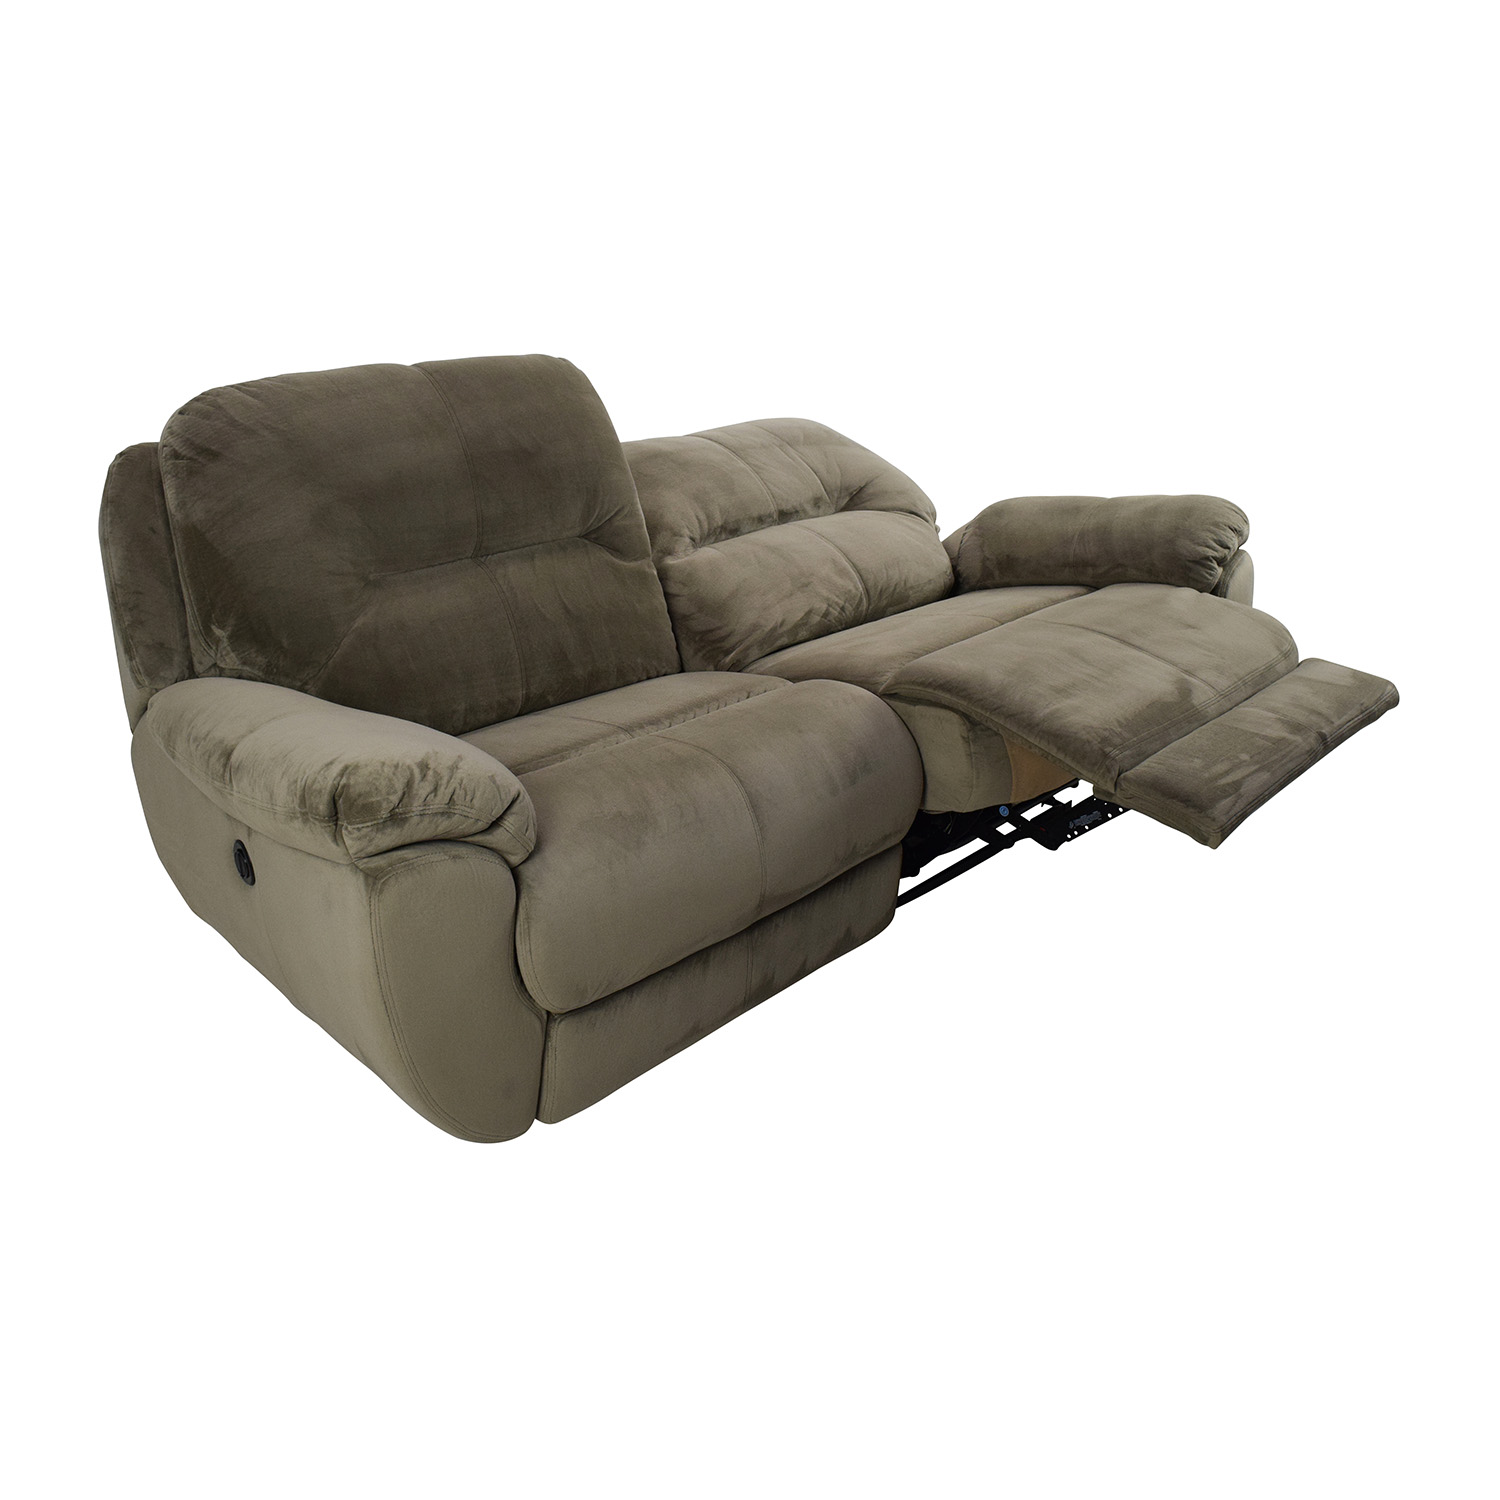 80 Off Kathy Ireland Home By Raymour And Flanigan. Power Reclining Sofa  Product Image